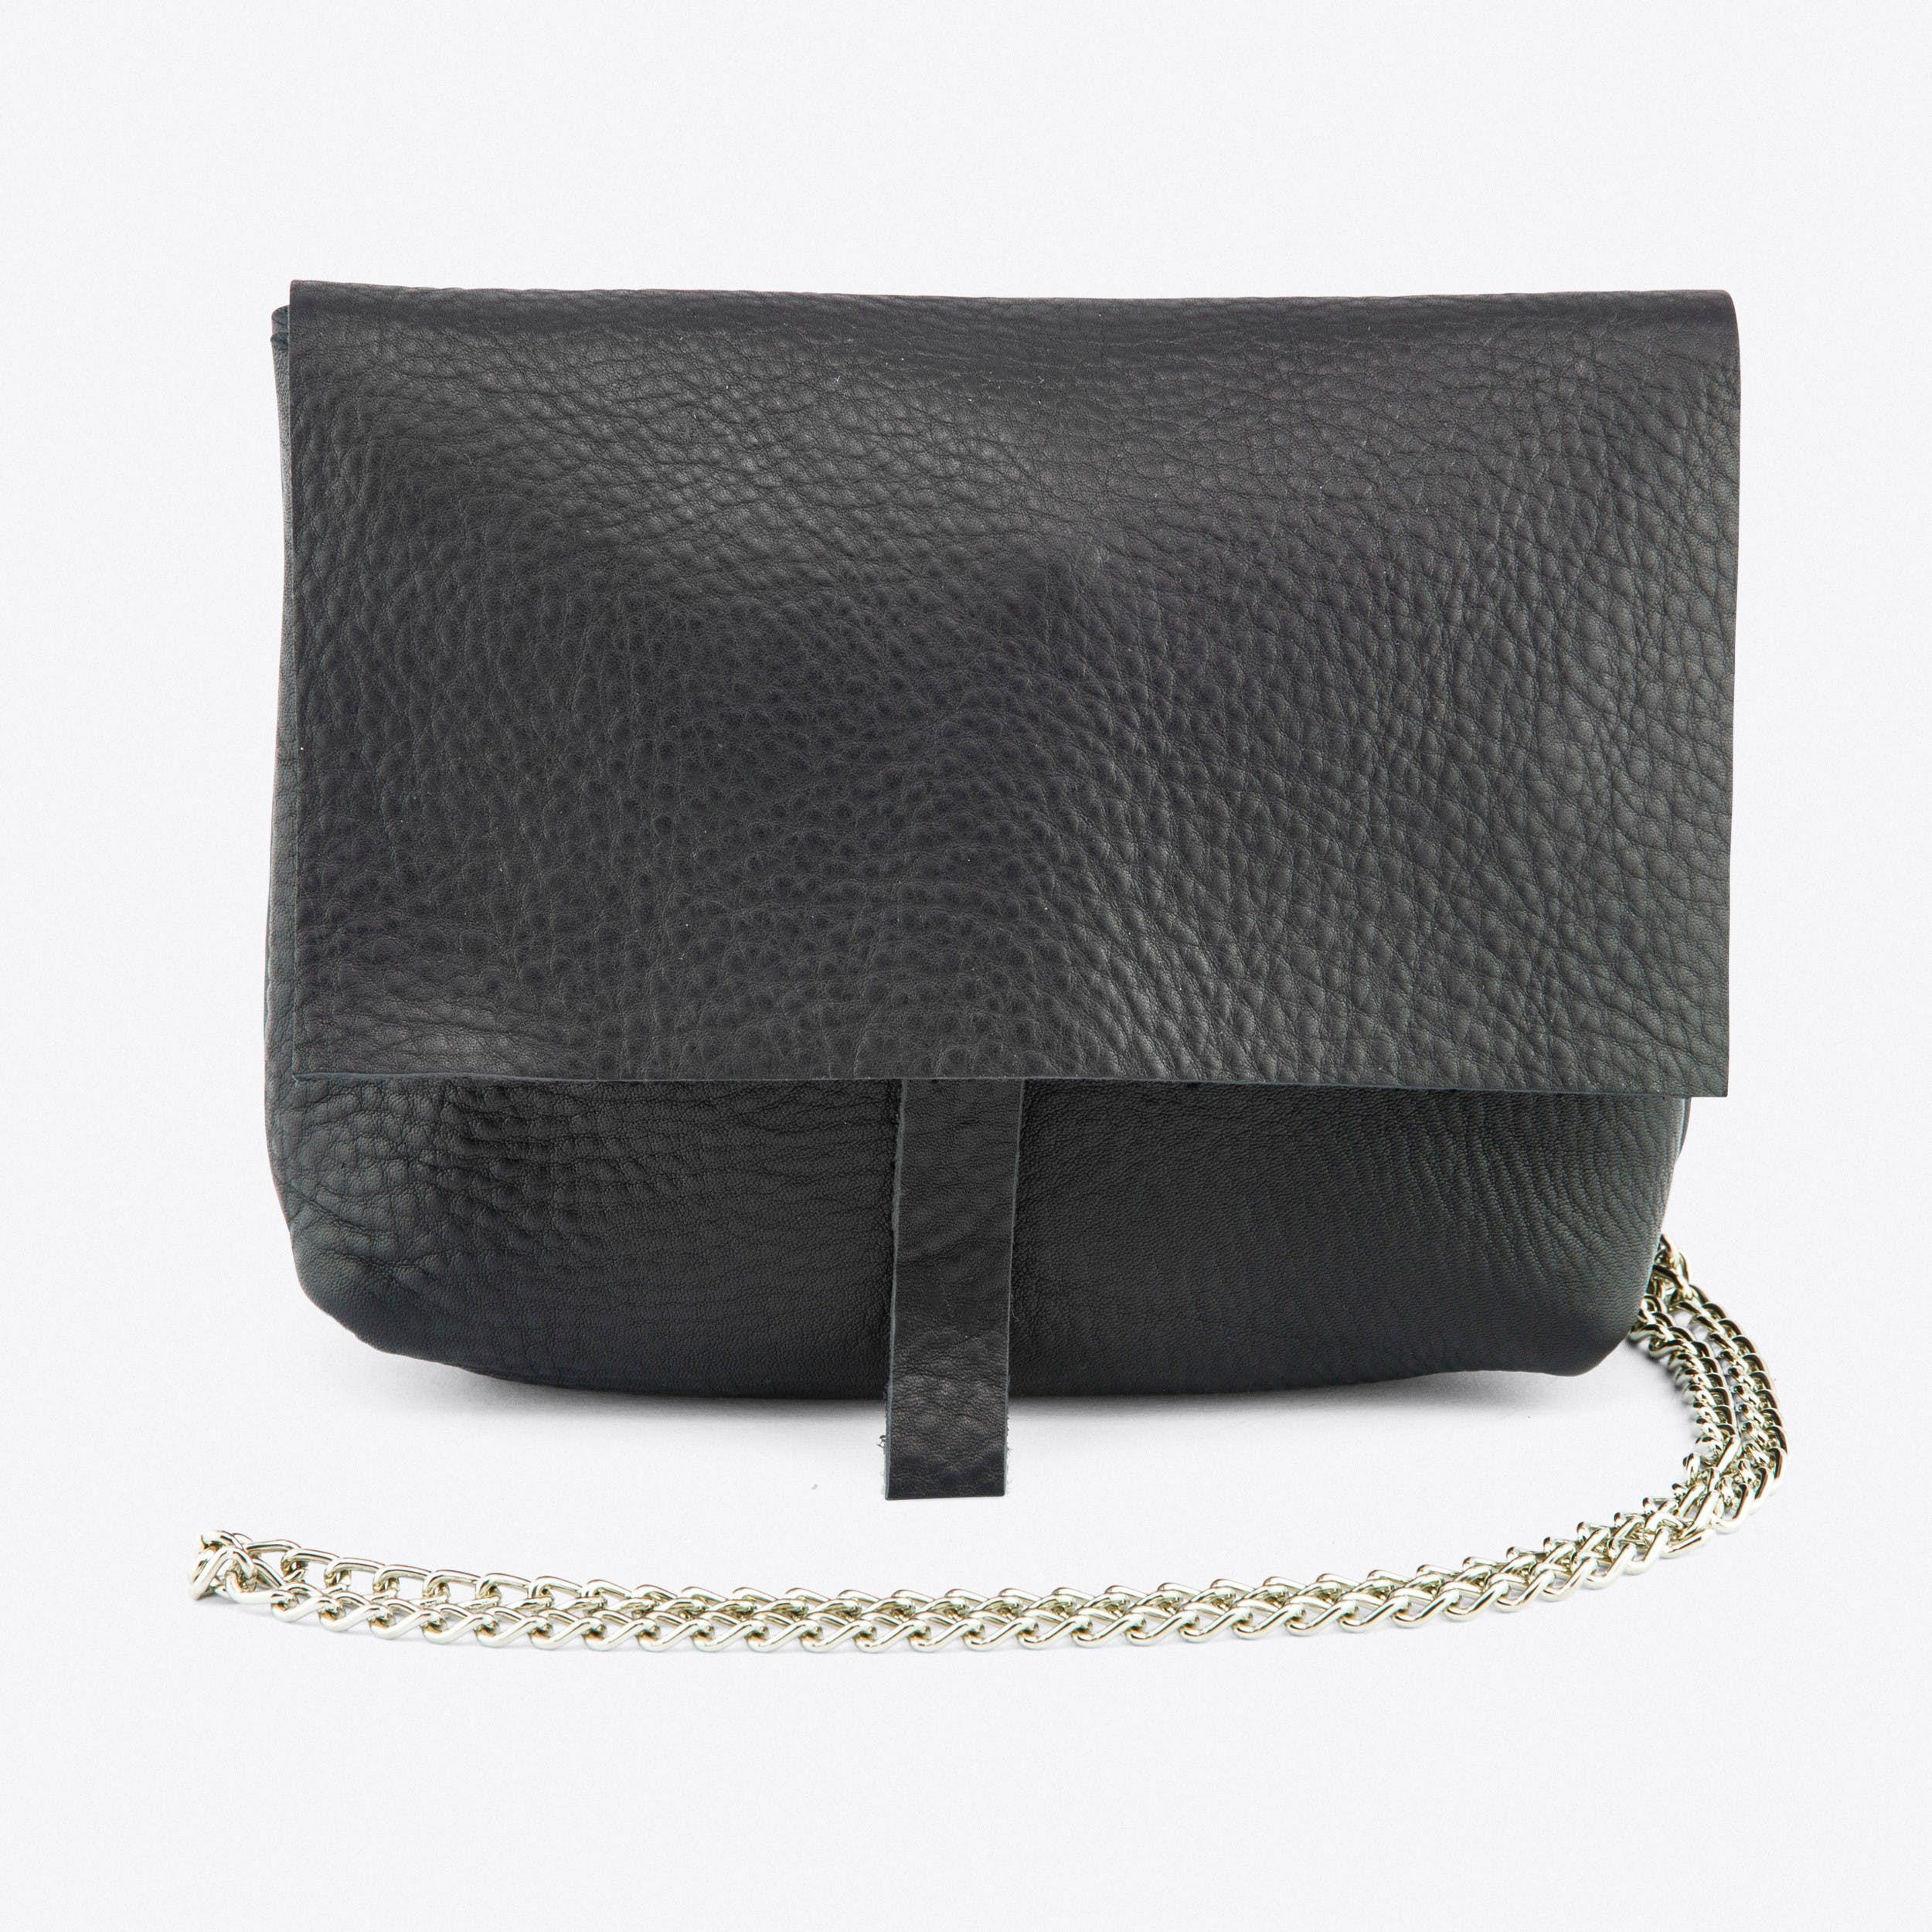 The Black Chain Crossover Bag in Pebbled Leather